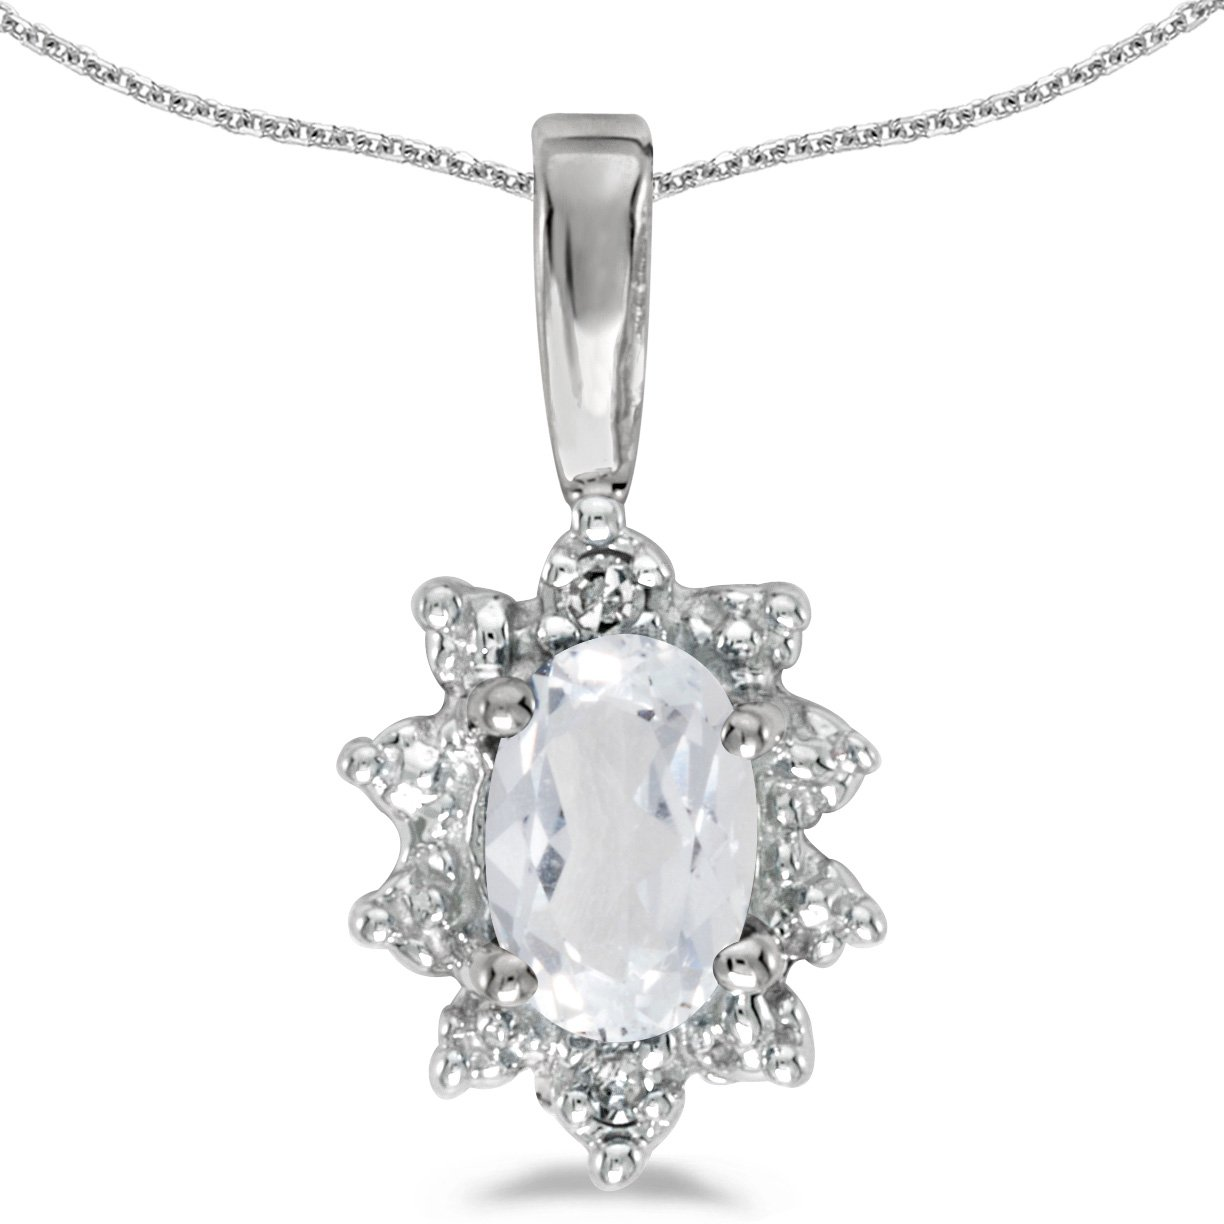 Jewels By Lux 10k White Gold Genuine Birthstone Oval Gemstone And Diamond Pendant 0.47 Cttw.